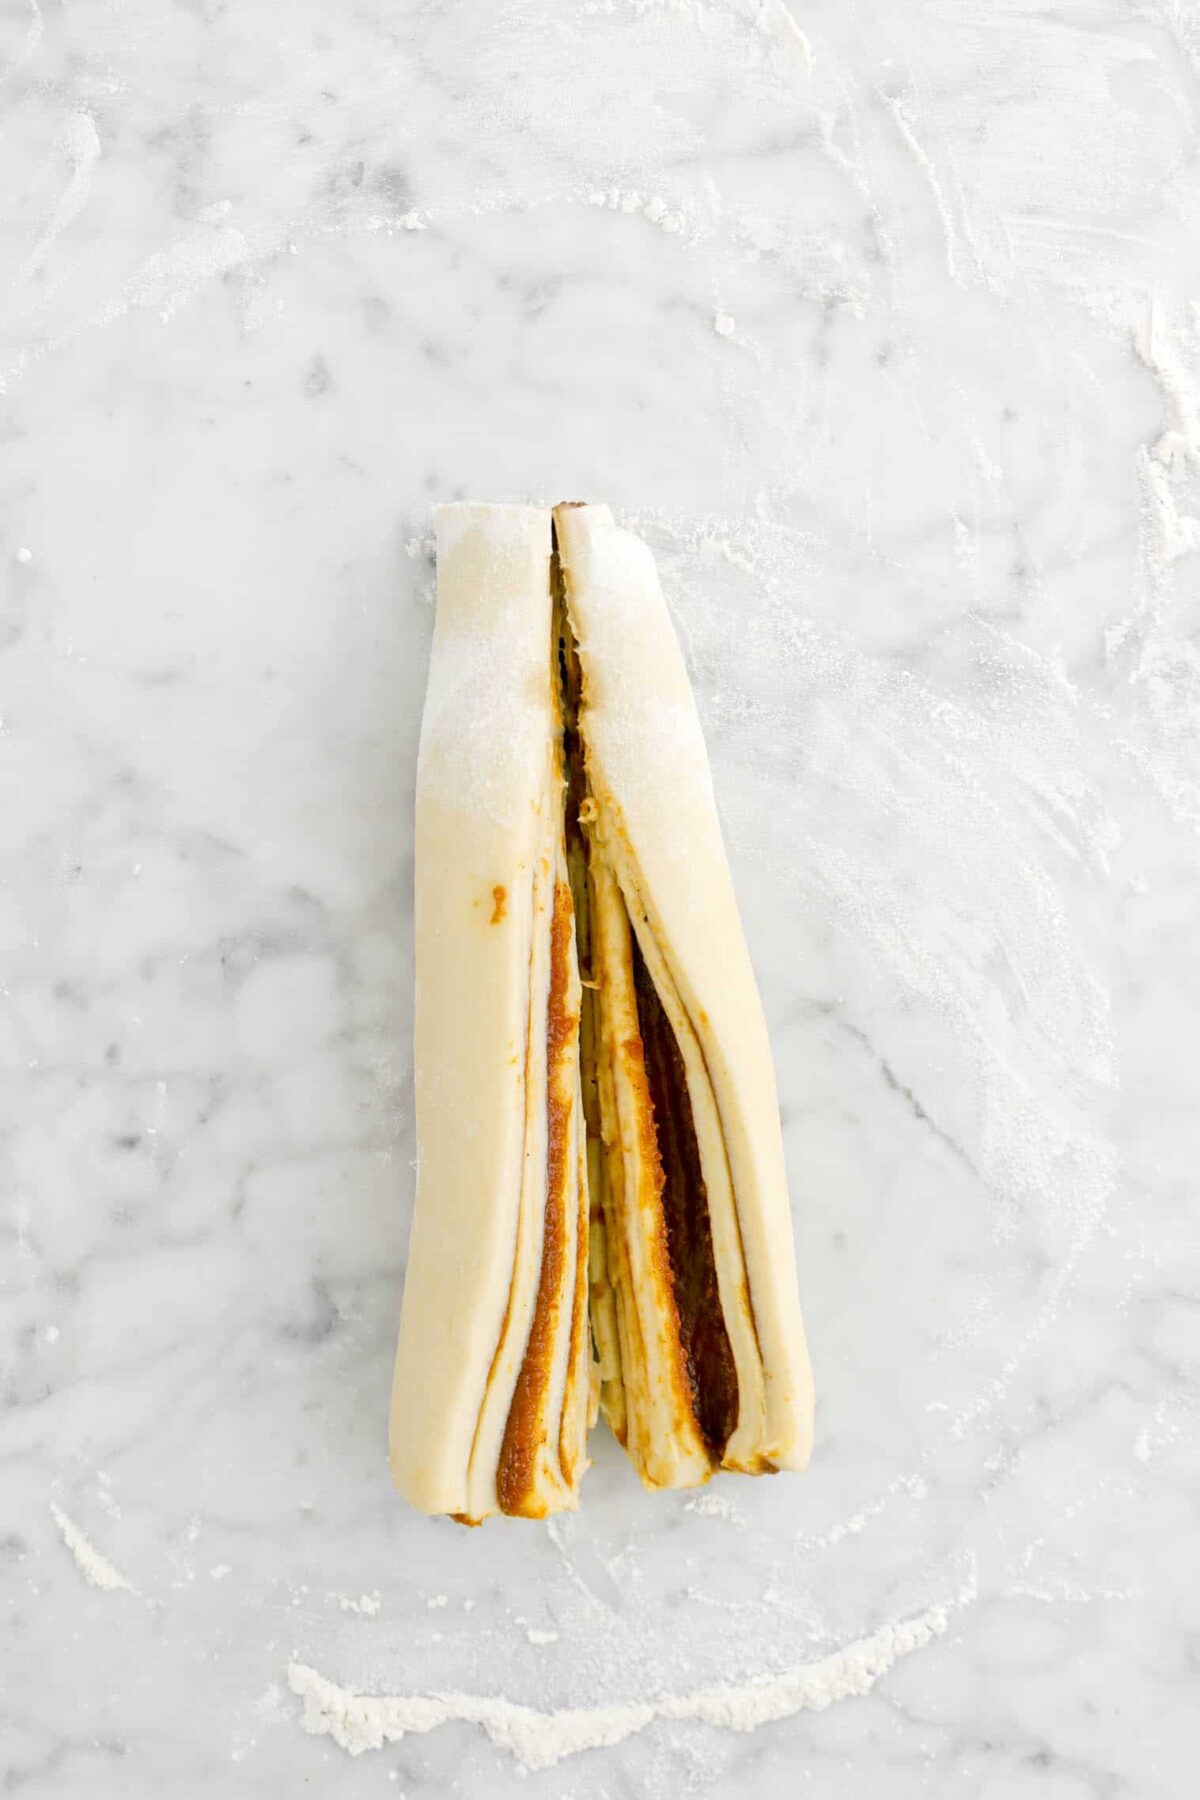 rolled dough cut in half lengthwise on marble counter